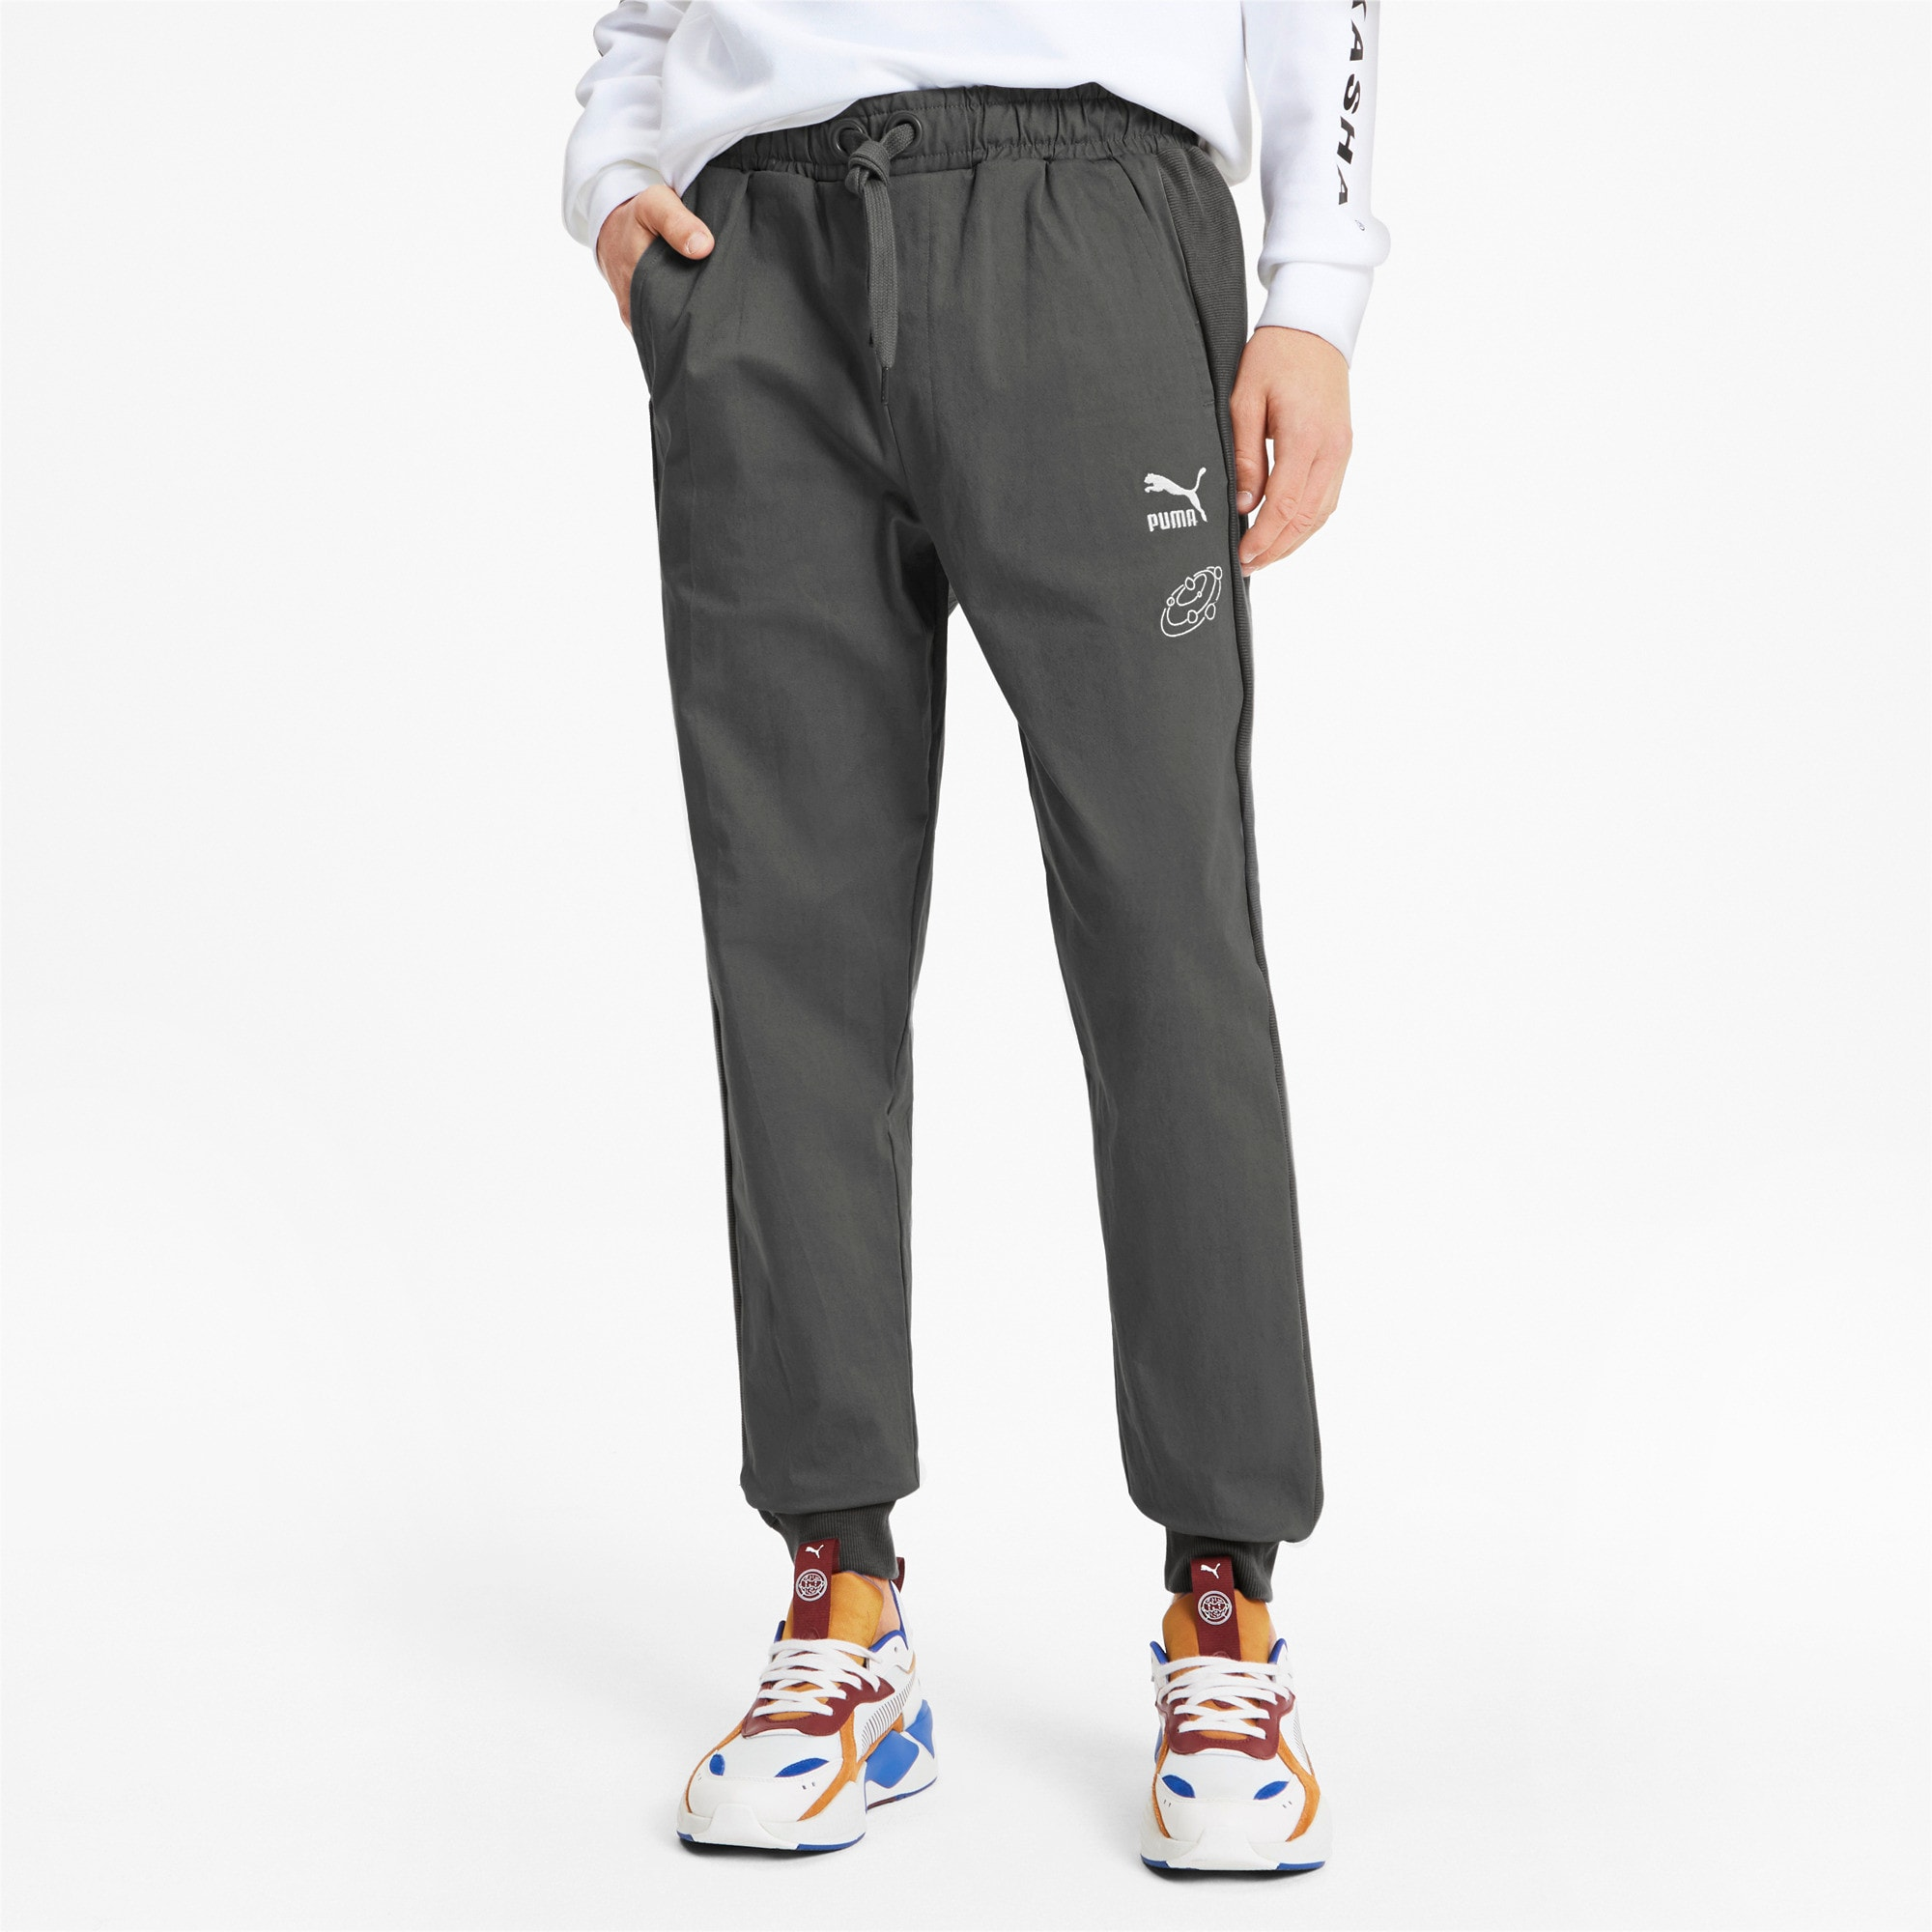 Thumbnail 2 of PUMA x TYAKASHA Woven Men's Pants, CASTLEROCK, medium